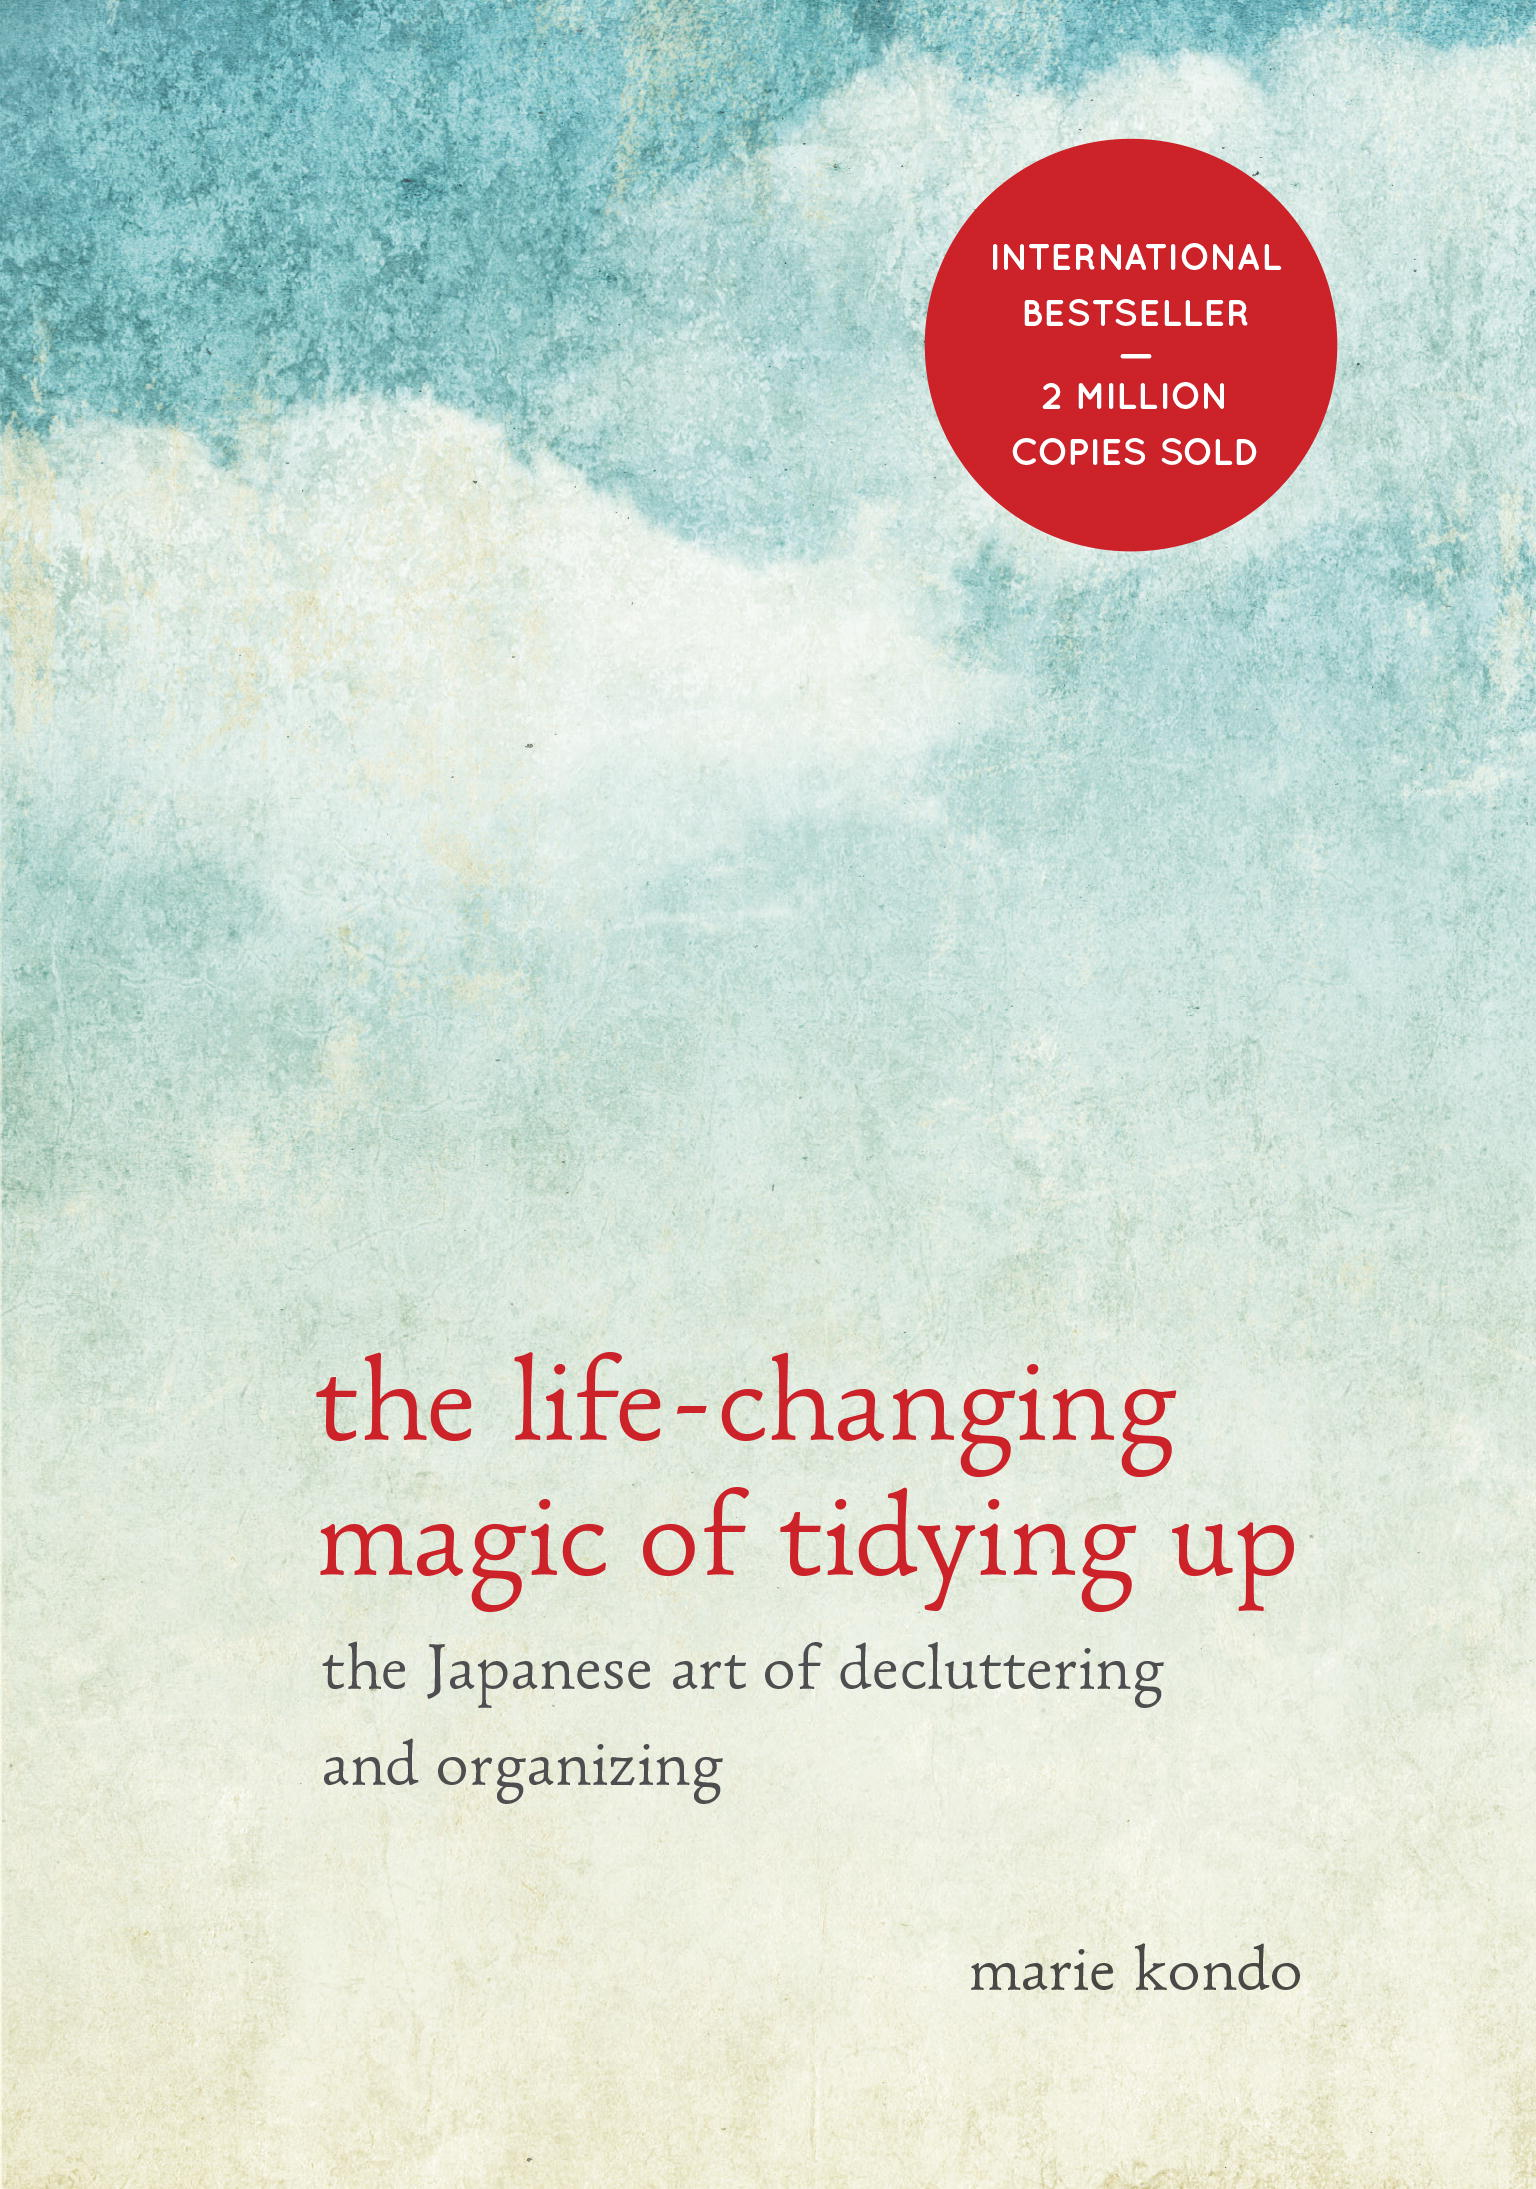 life changing magic by marie kondo review